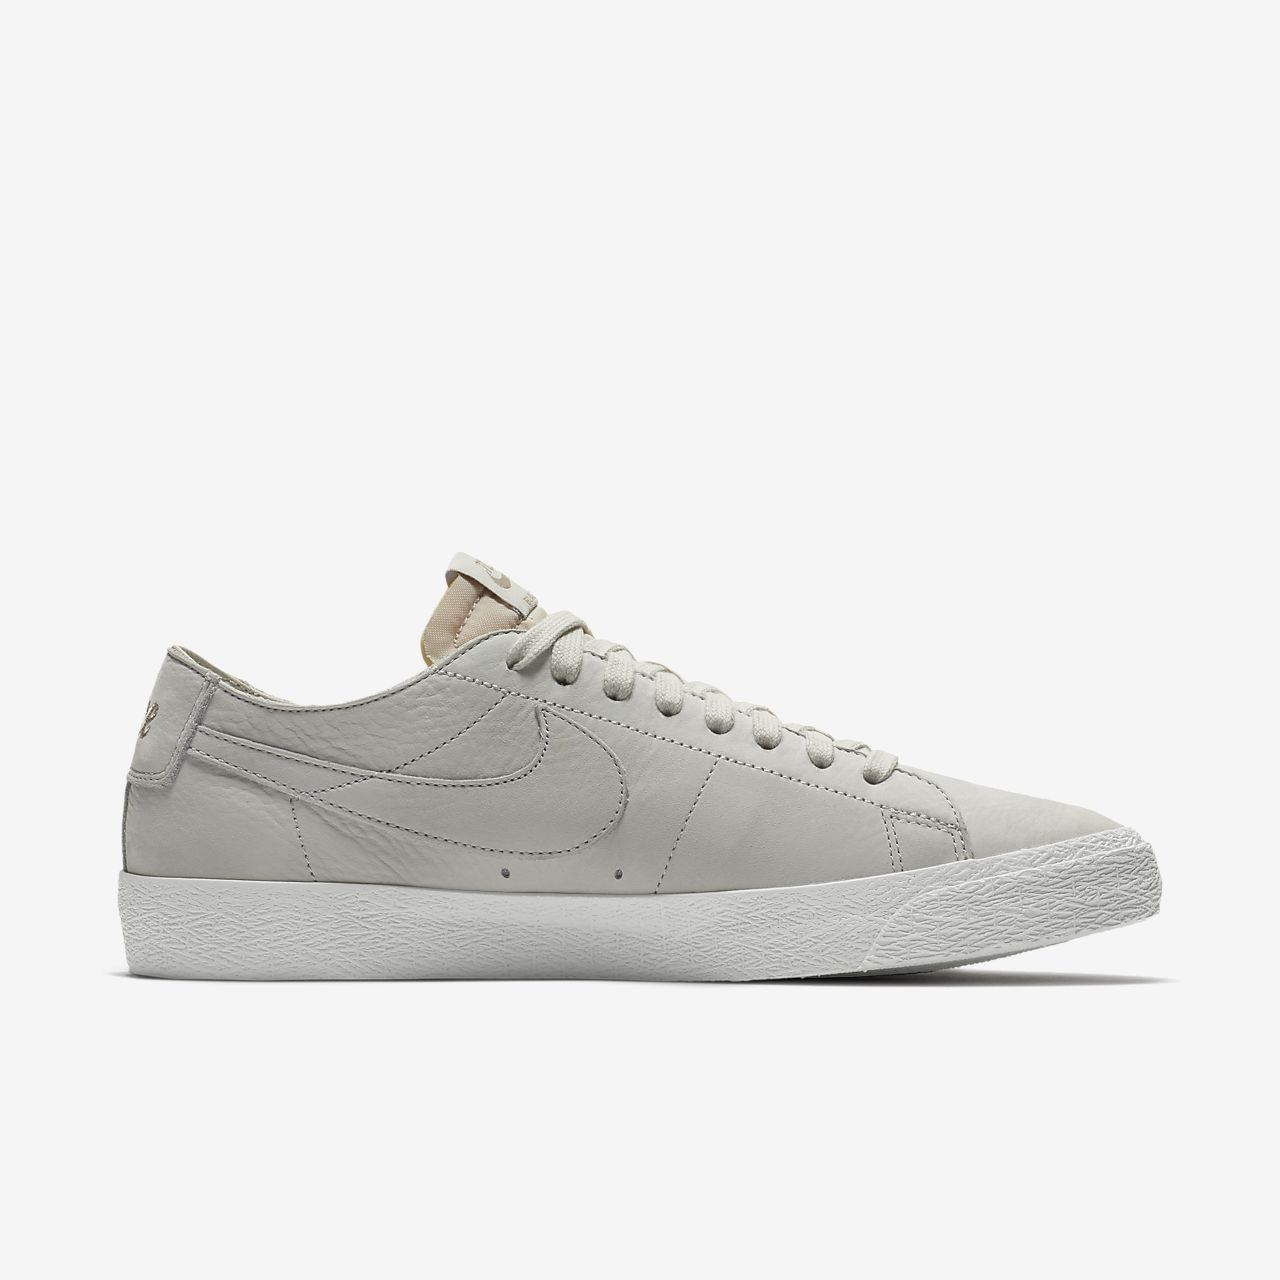 ... Nike SB Zoom Blazer Low Deconstructed Men's Skateboarding Shoe